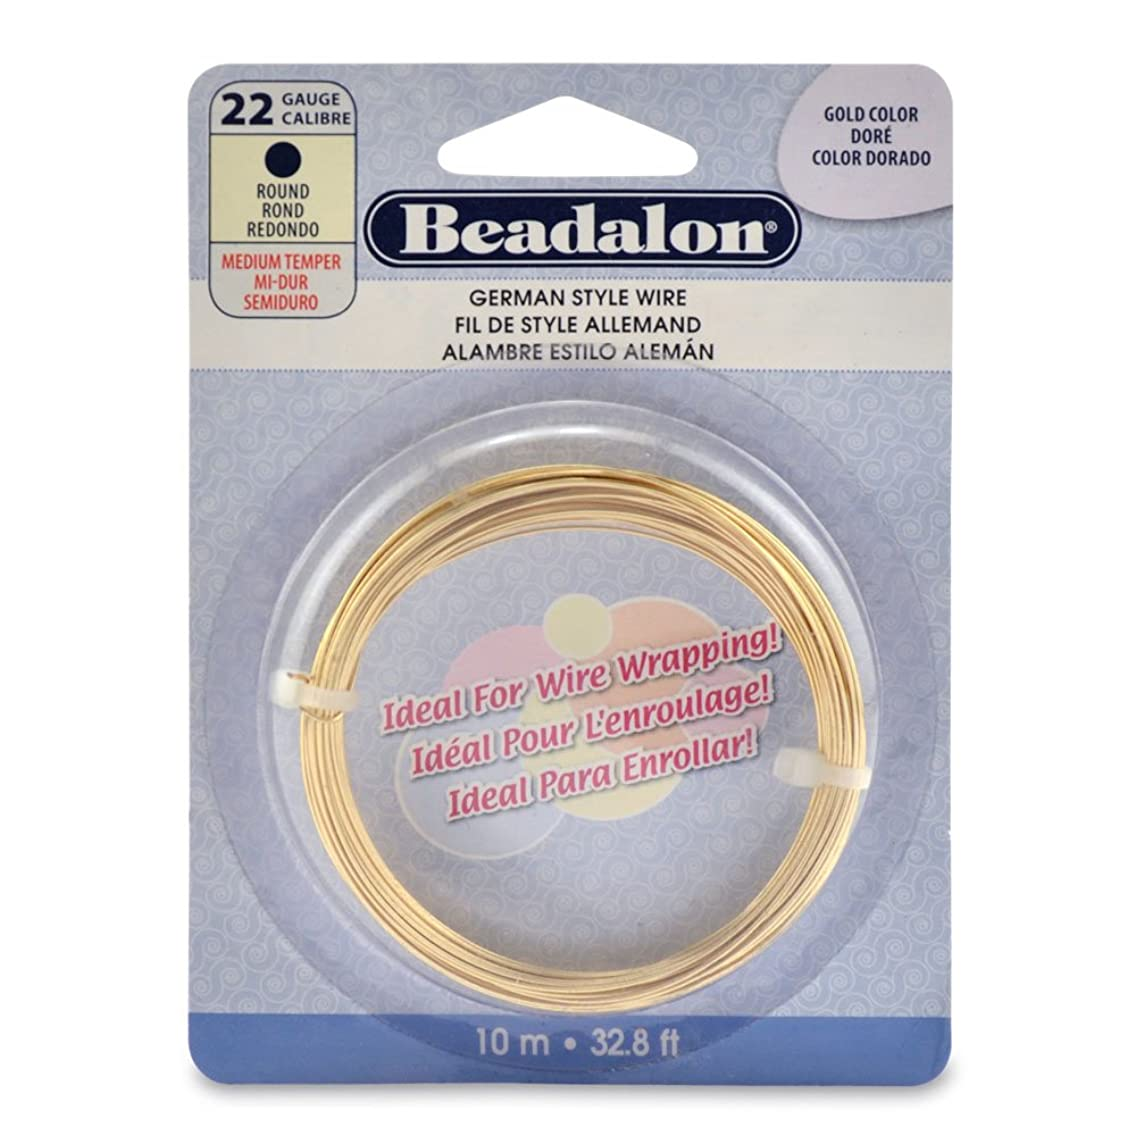 Beadalon German Style Wire, Round, Gold Color, 22 gauge-10 Meters